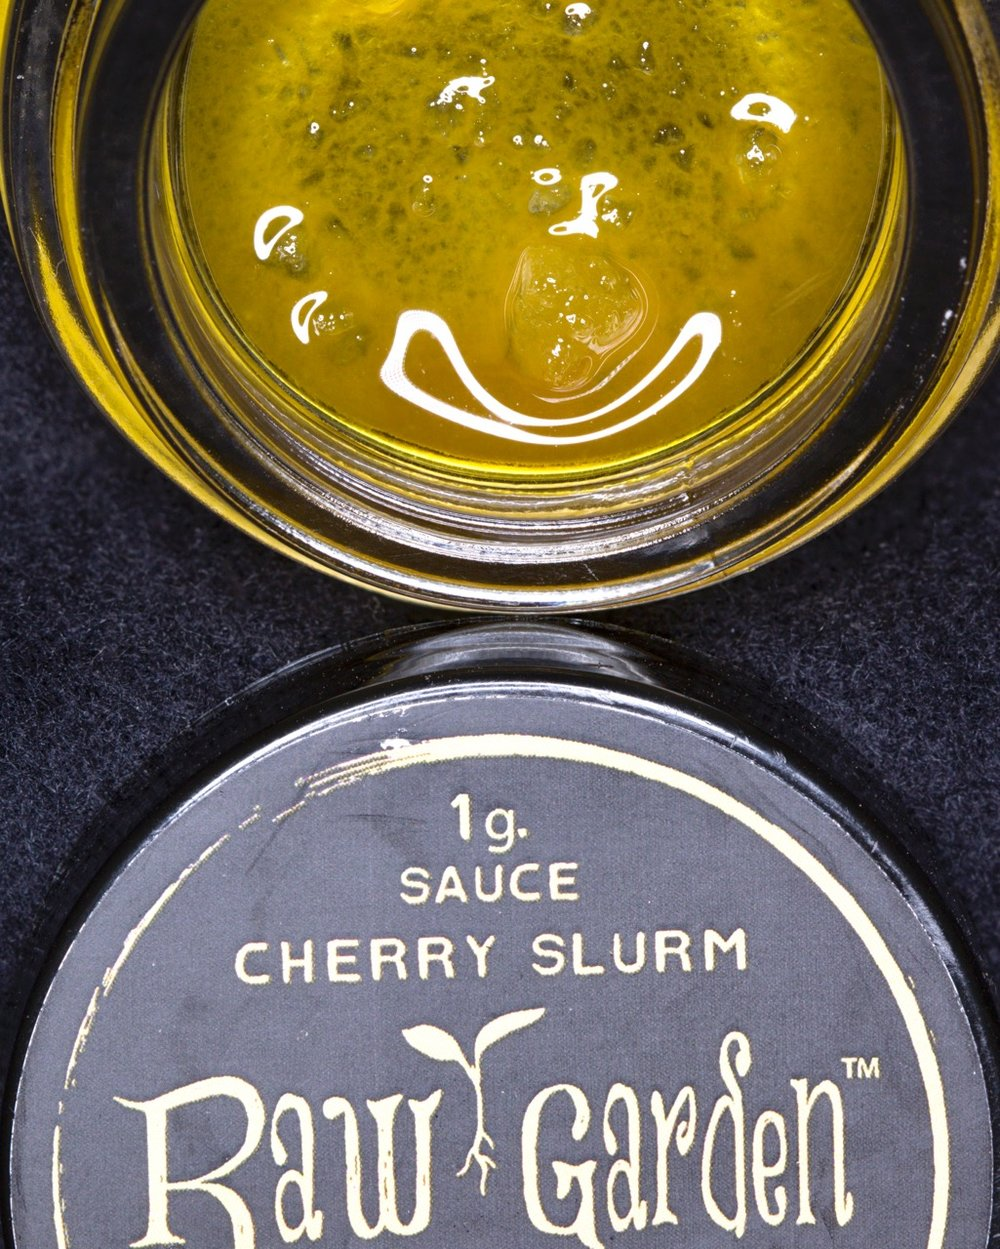 Cherry Slurm live-resin sauce by Raw Garden.